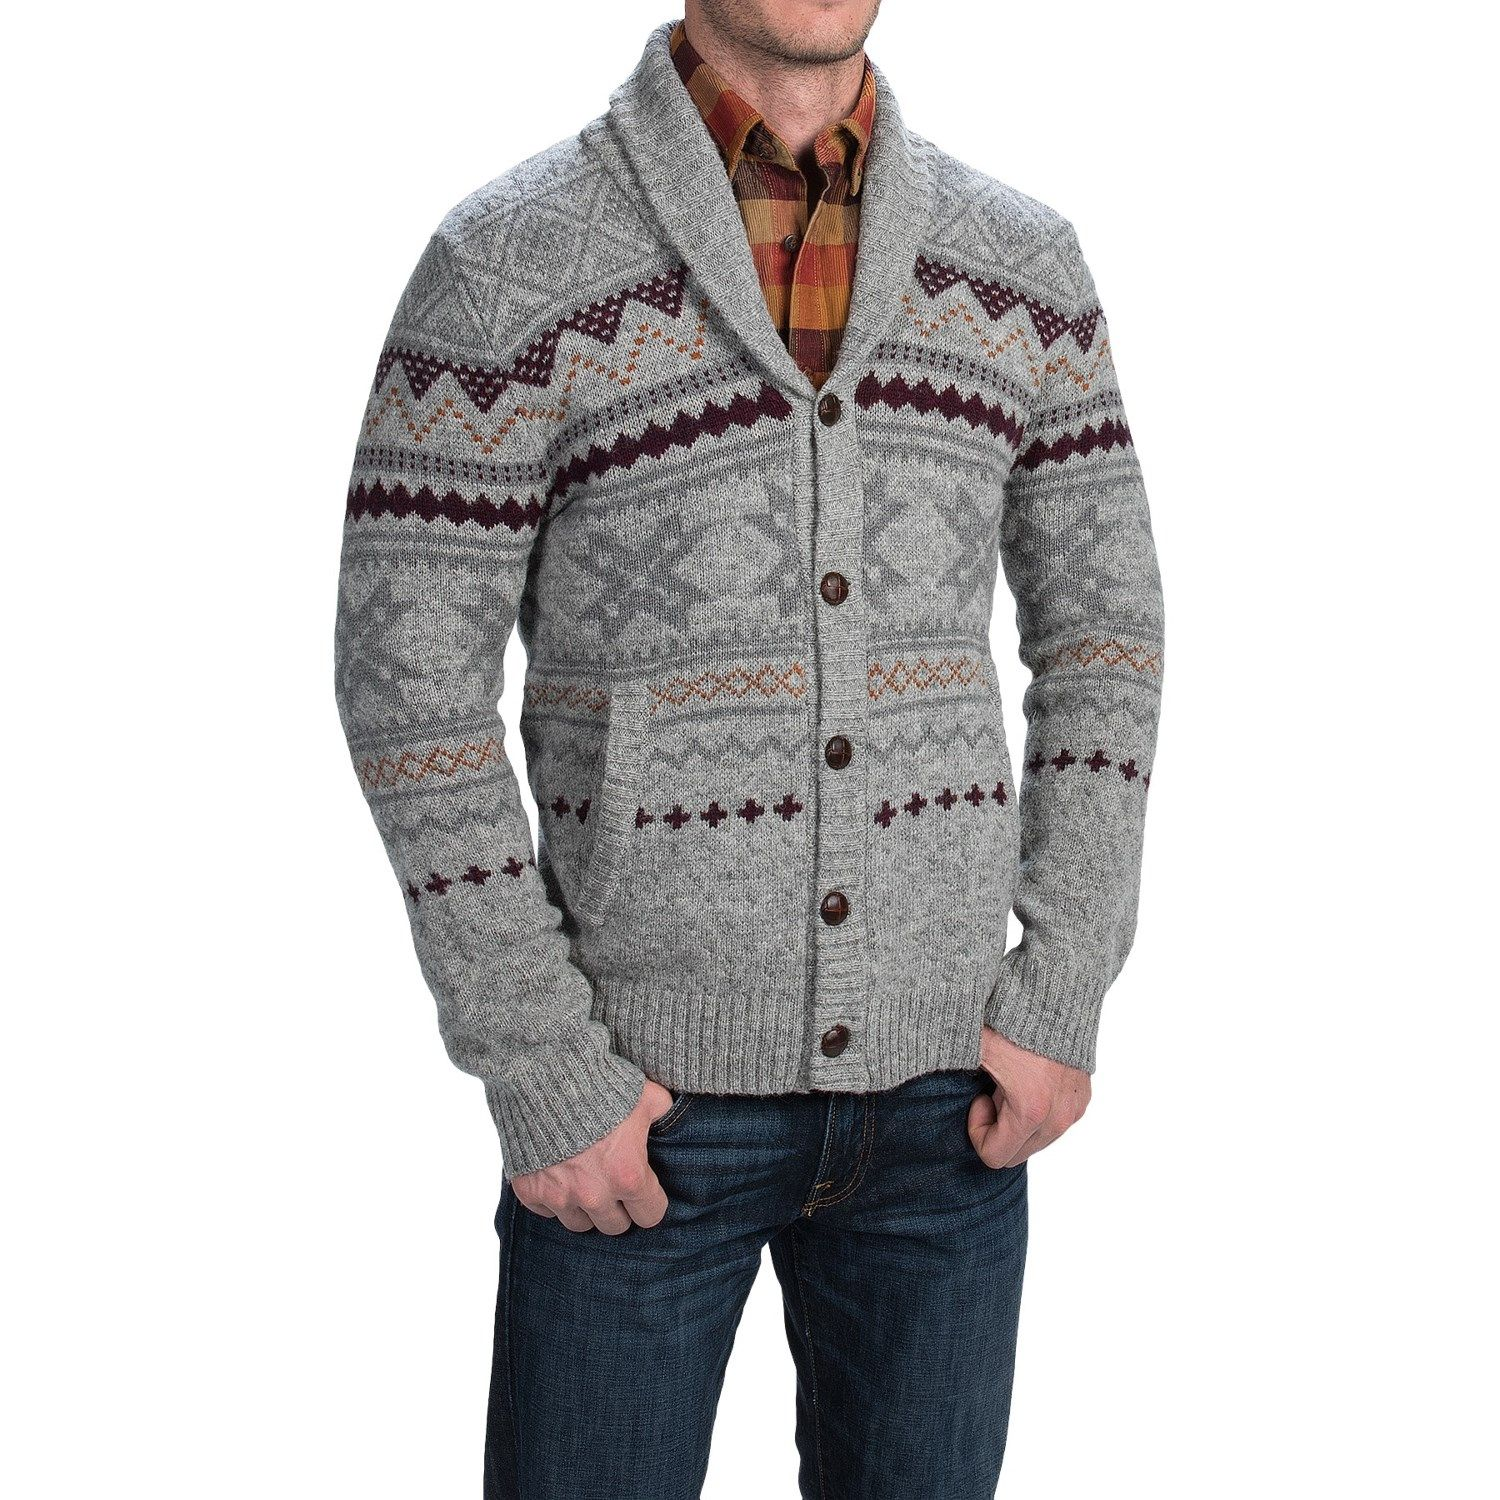 KNITWEAR - Cardigans Woolrich For Nice Sale Online Cheap Sale Geniue Stockist Free Shipping In China wSZkmHMNOq